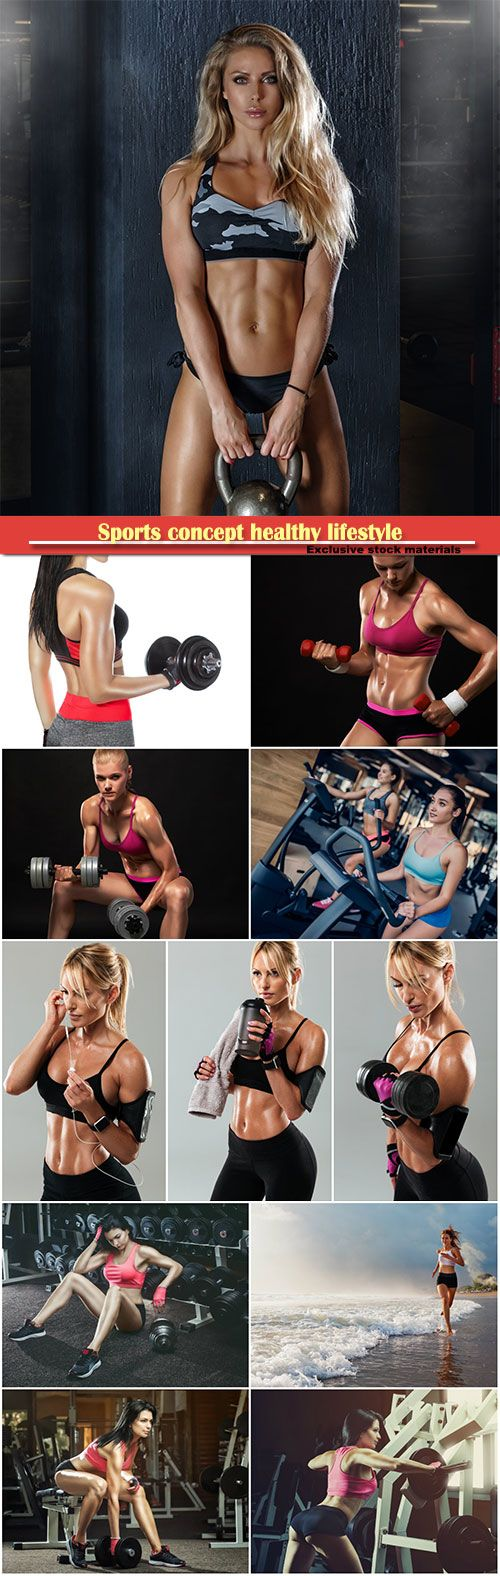 Sports concept fat burning and a healthy lifestyle